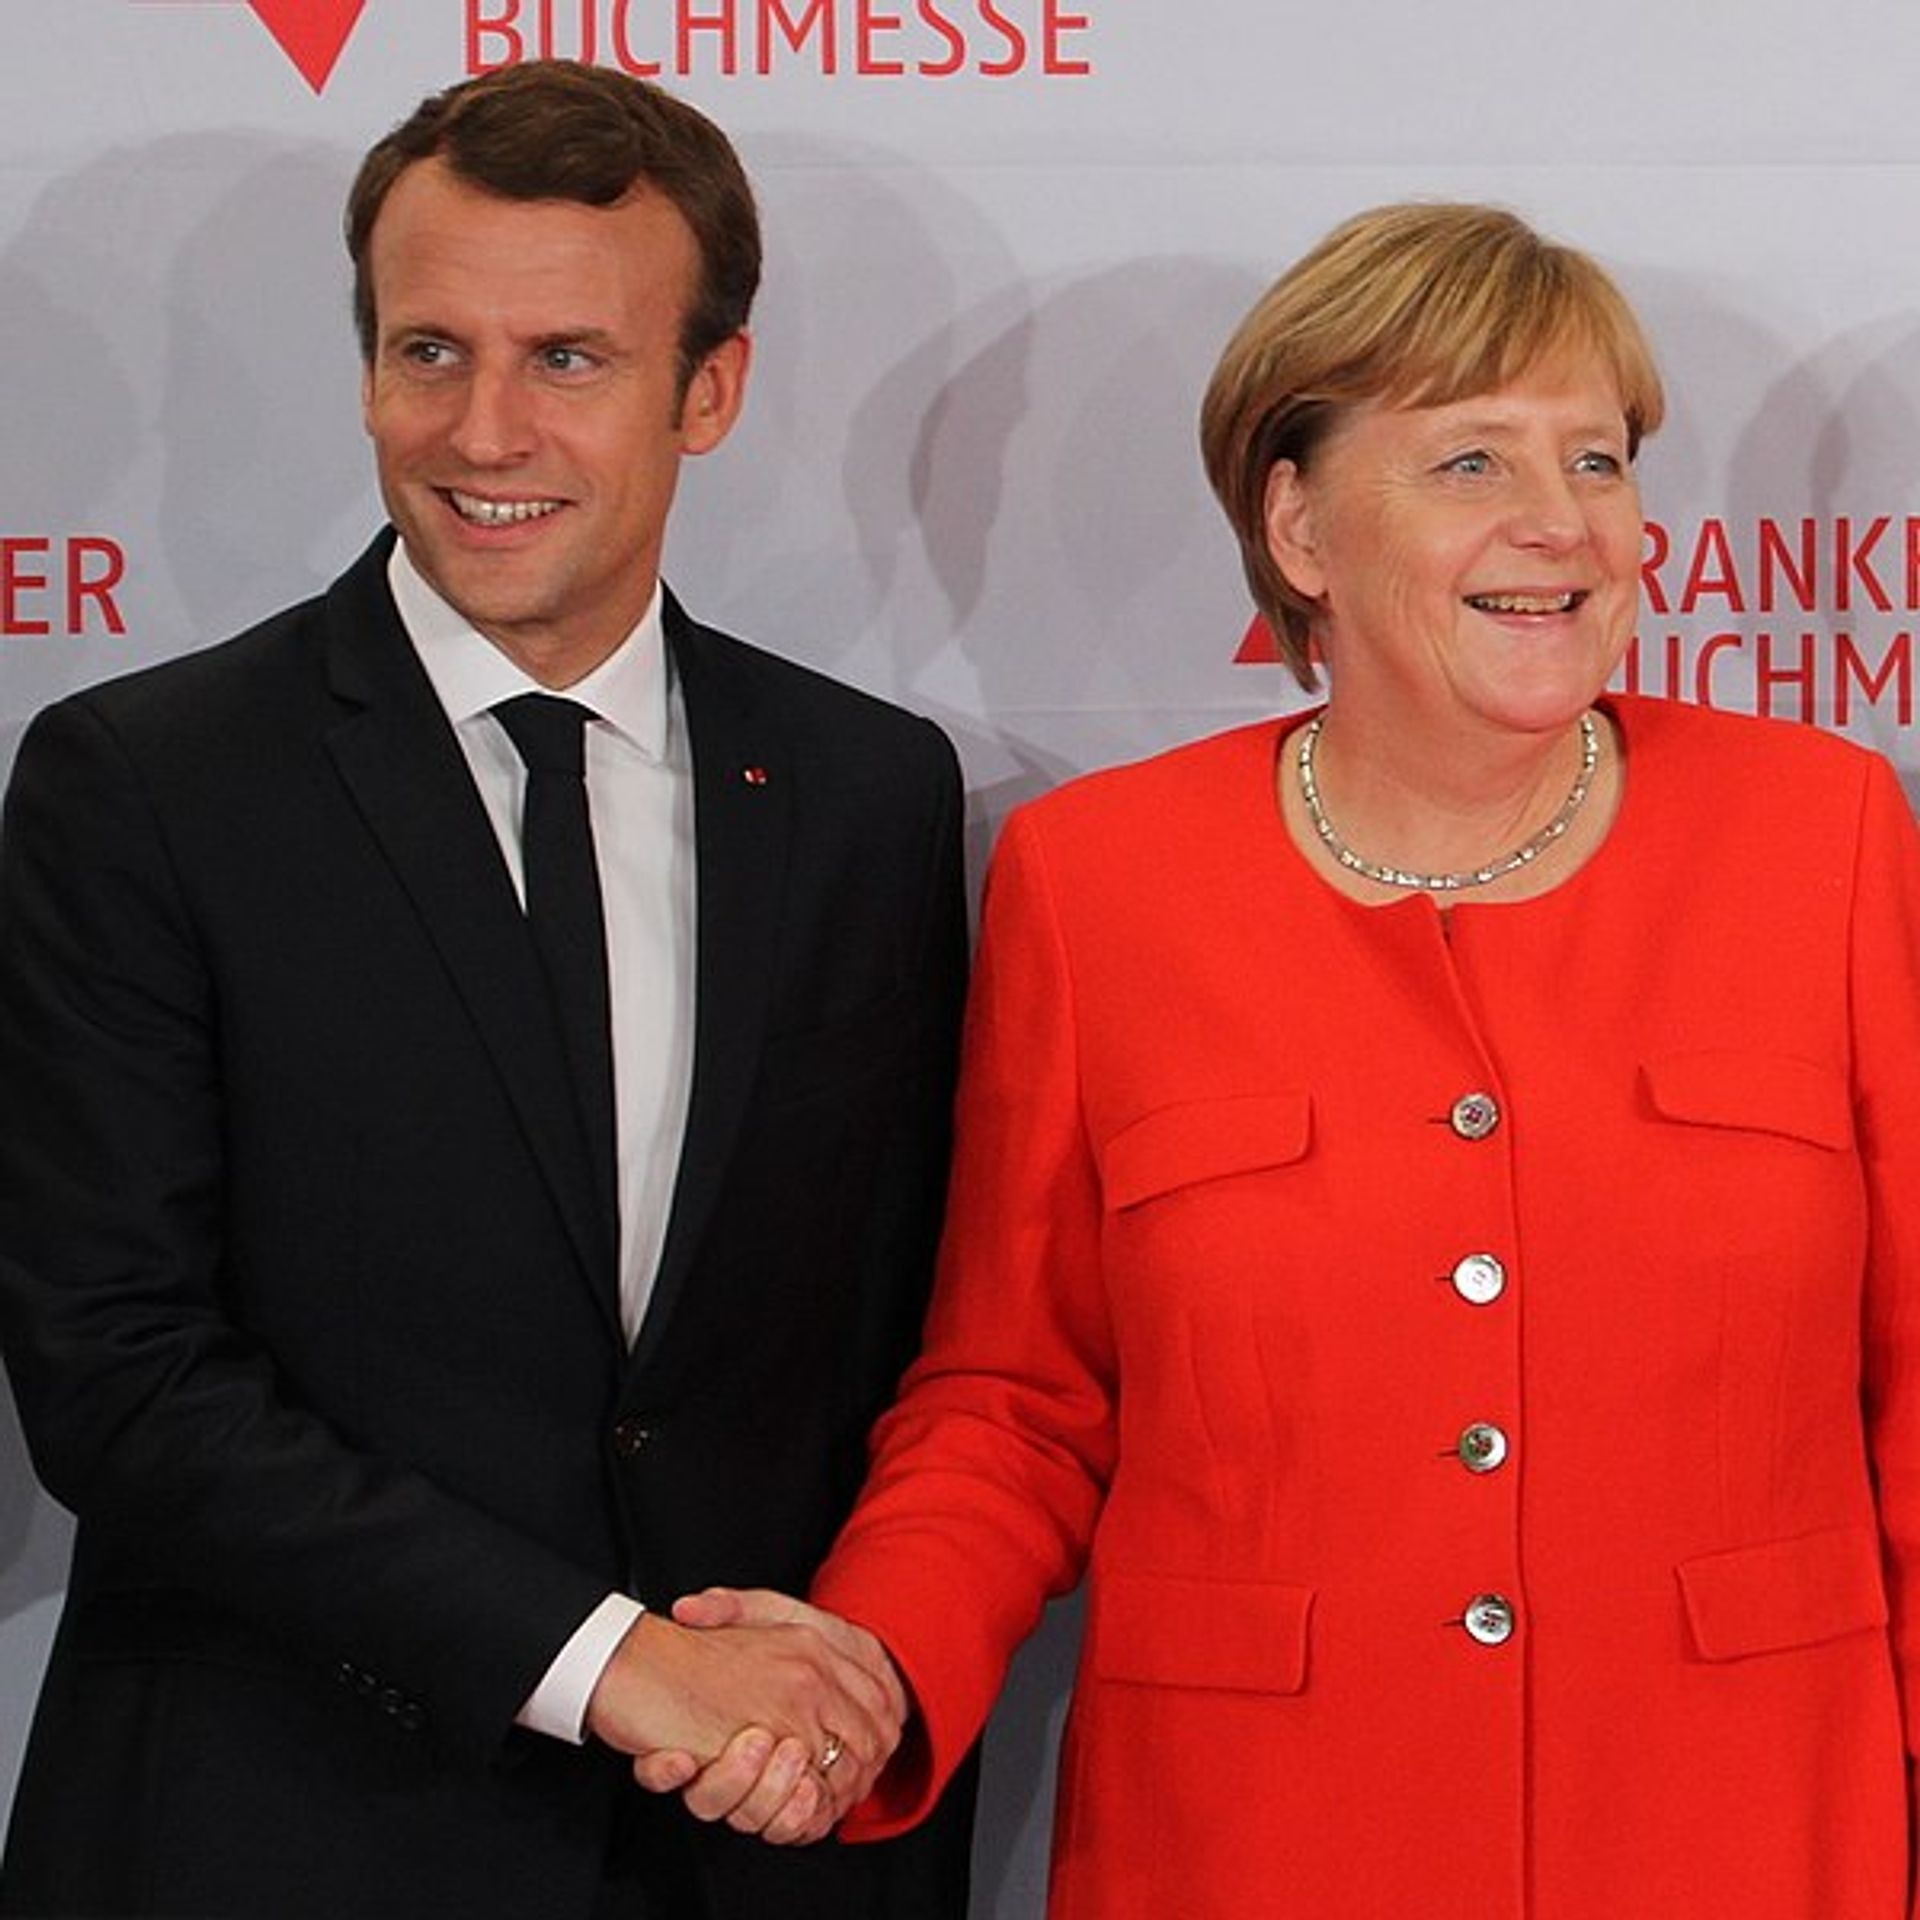 """The culture institutes are part of the """"Aachen Treaty,"""" a Franco-German friendship accord signed by Chancellor Angela Merkel and President Emmanuel Macron on January 22 Wiki Commons"""